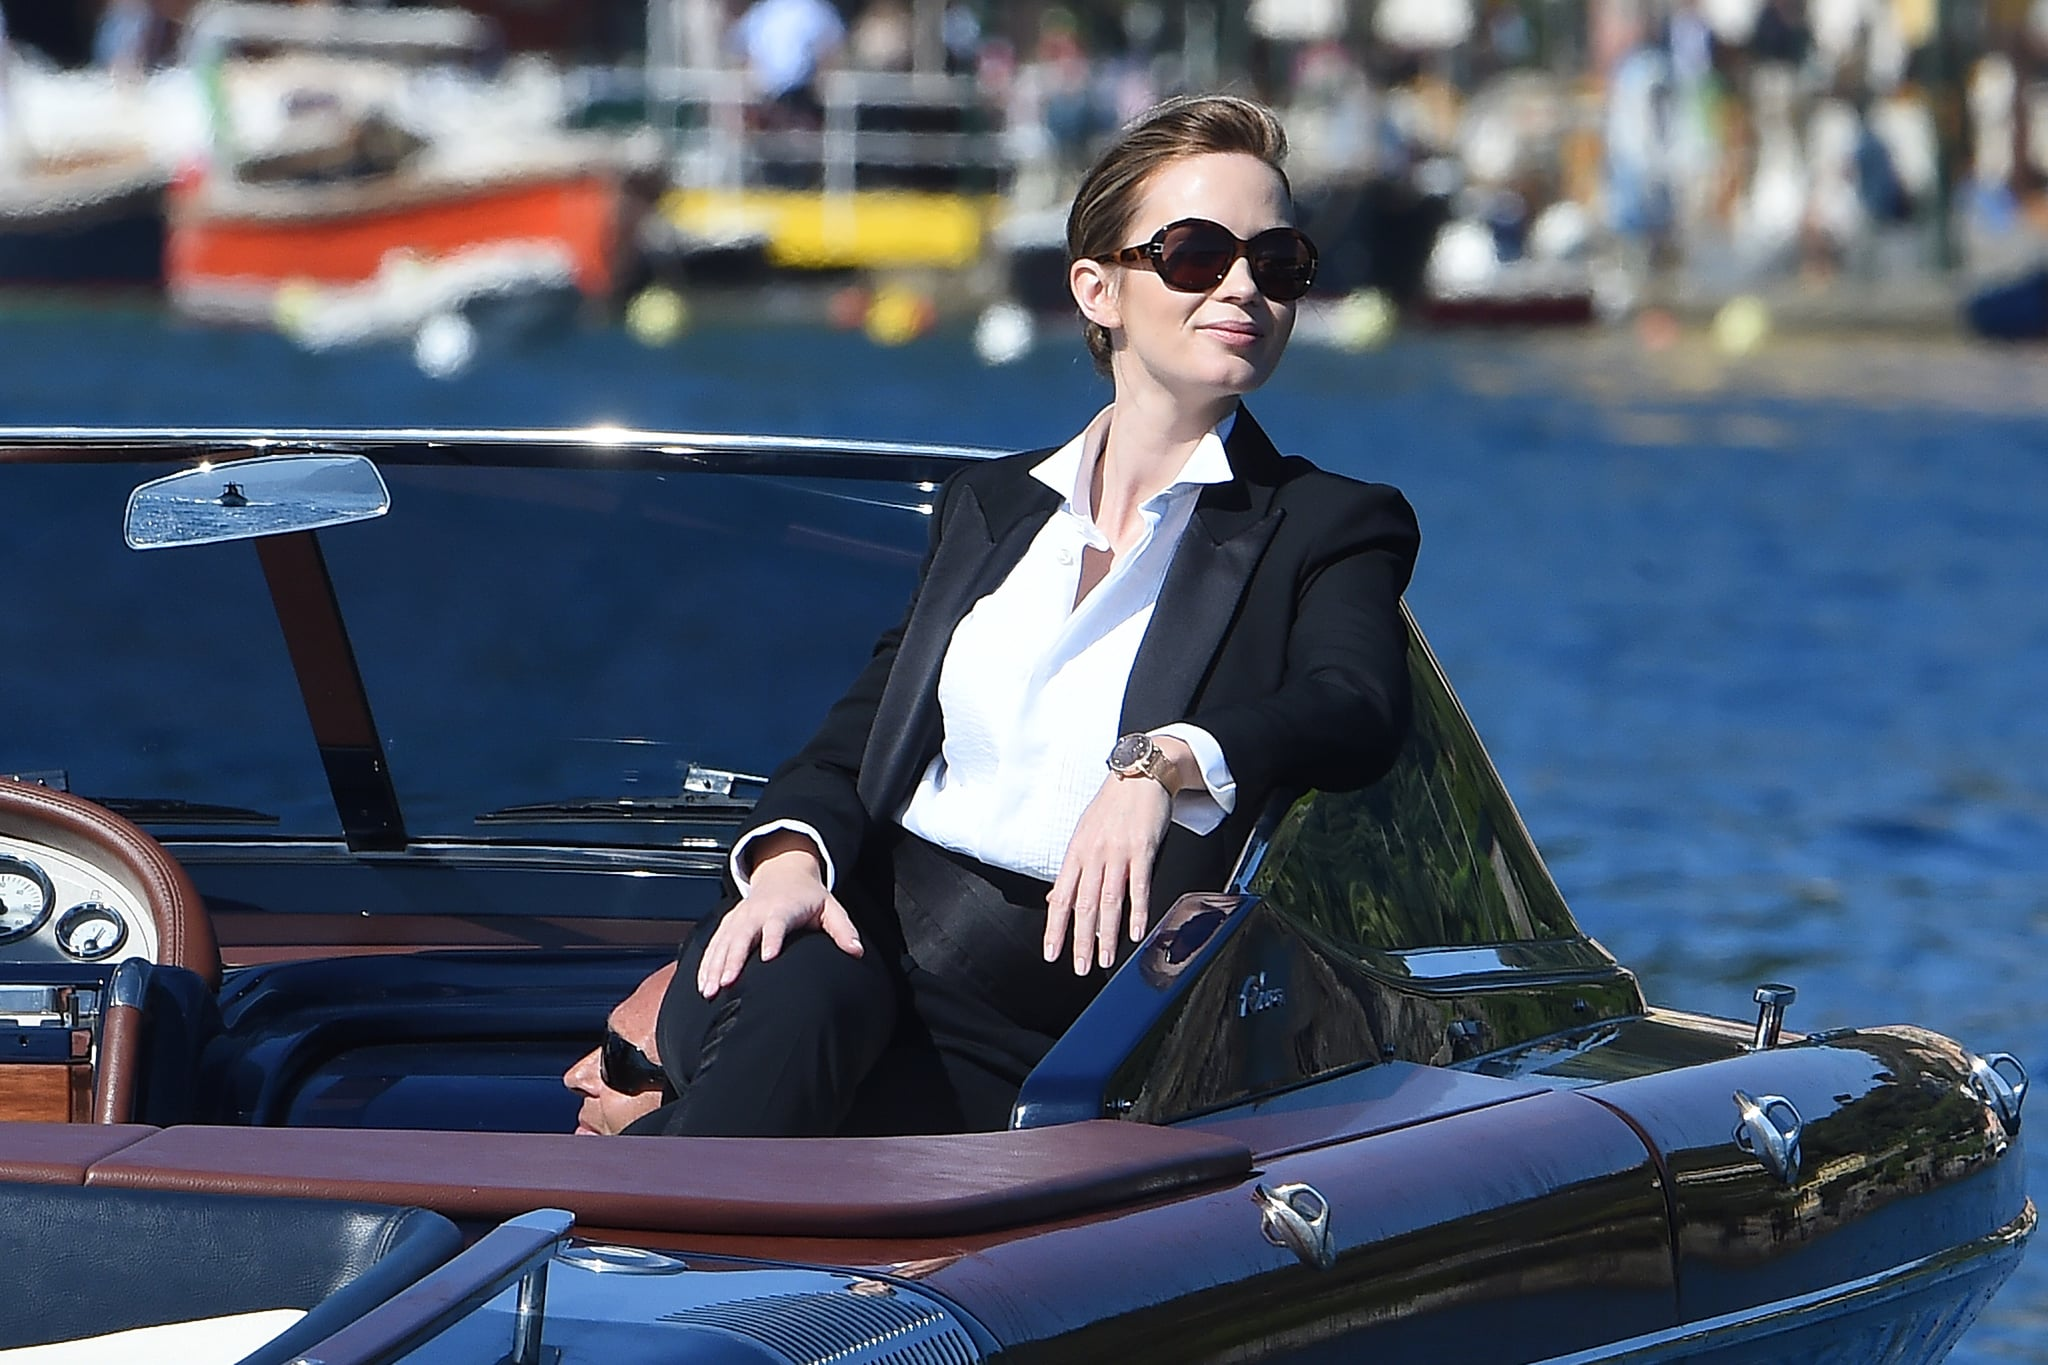 Emily Blunt basked in the sun for a photo shoot.